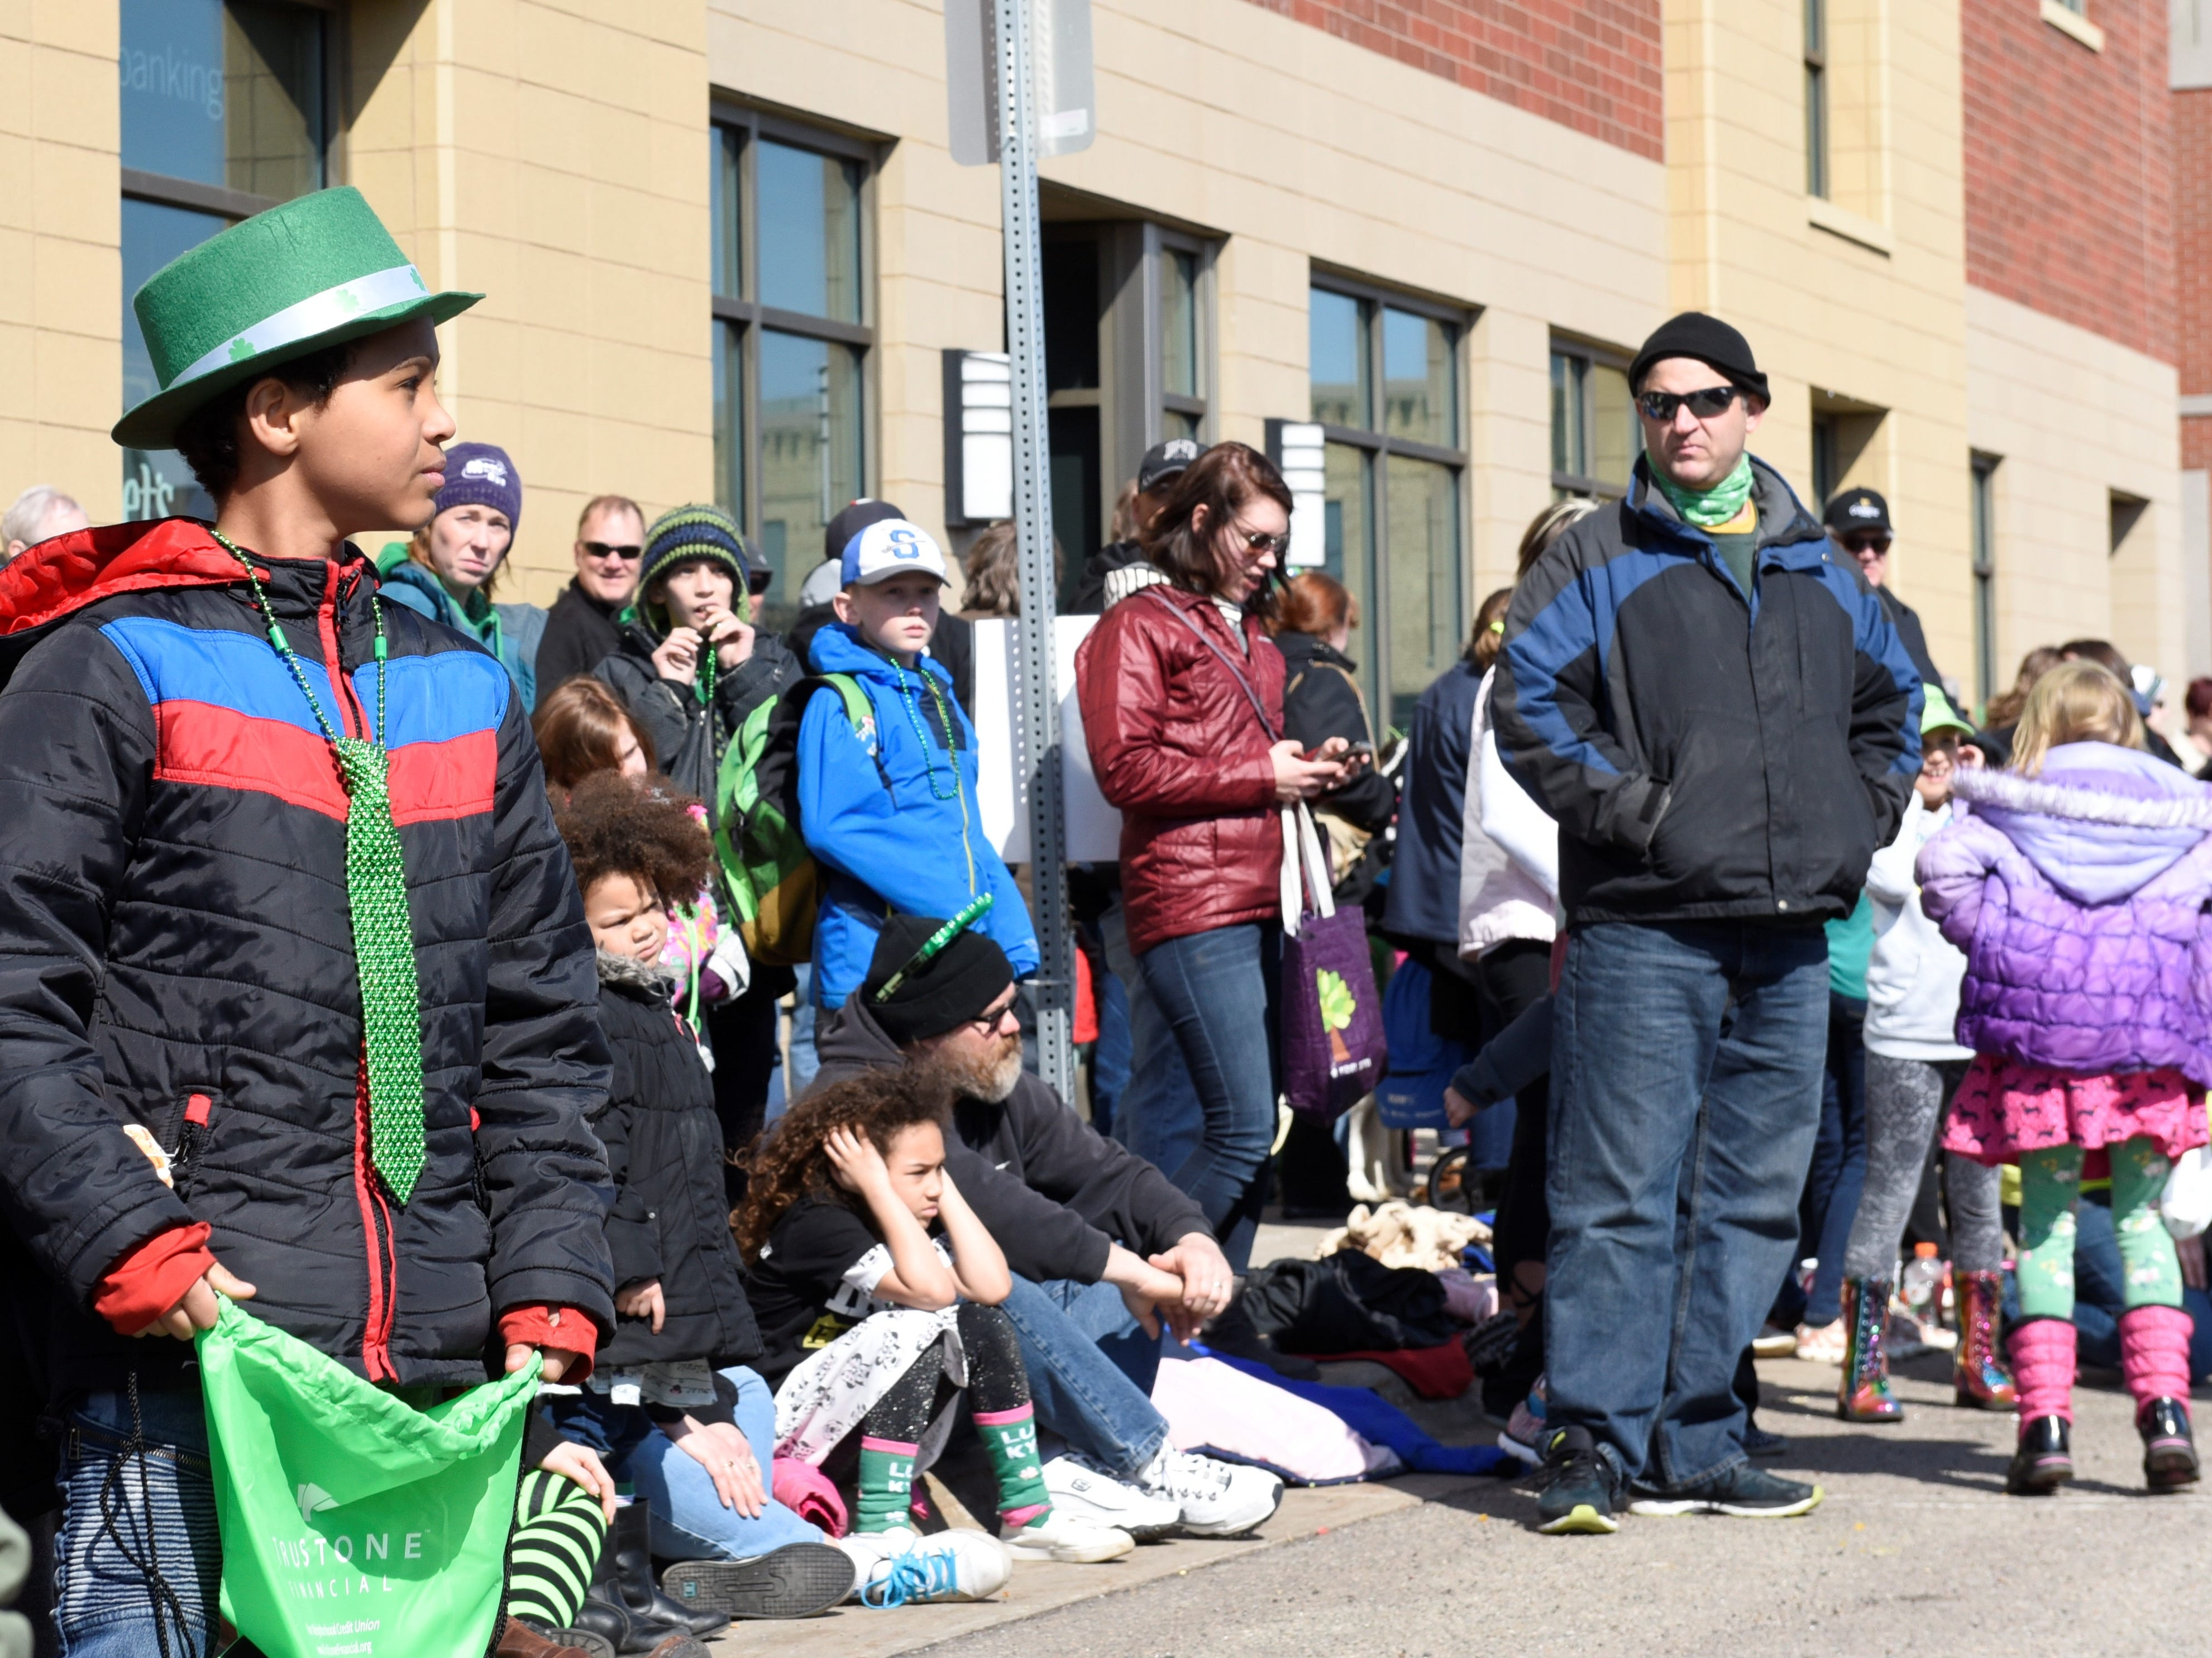 Kids hope for candy as they watch the St. Patrick's Day parade go by March 17, 2019.